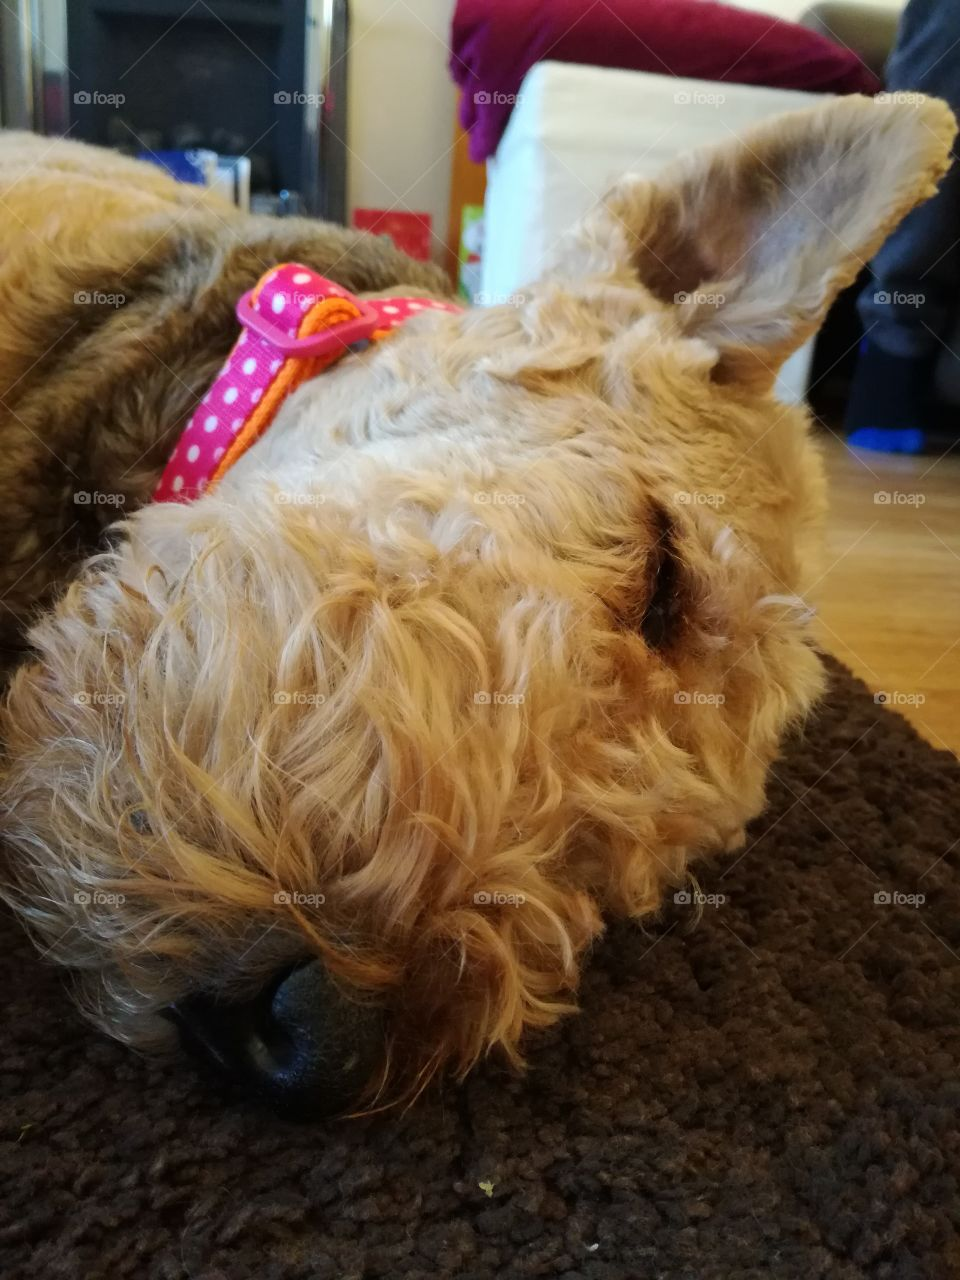 A close-up of a cute, sleeping Airedale Terrier.